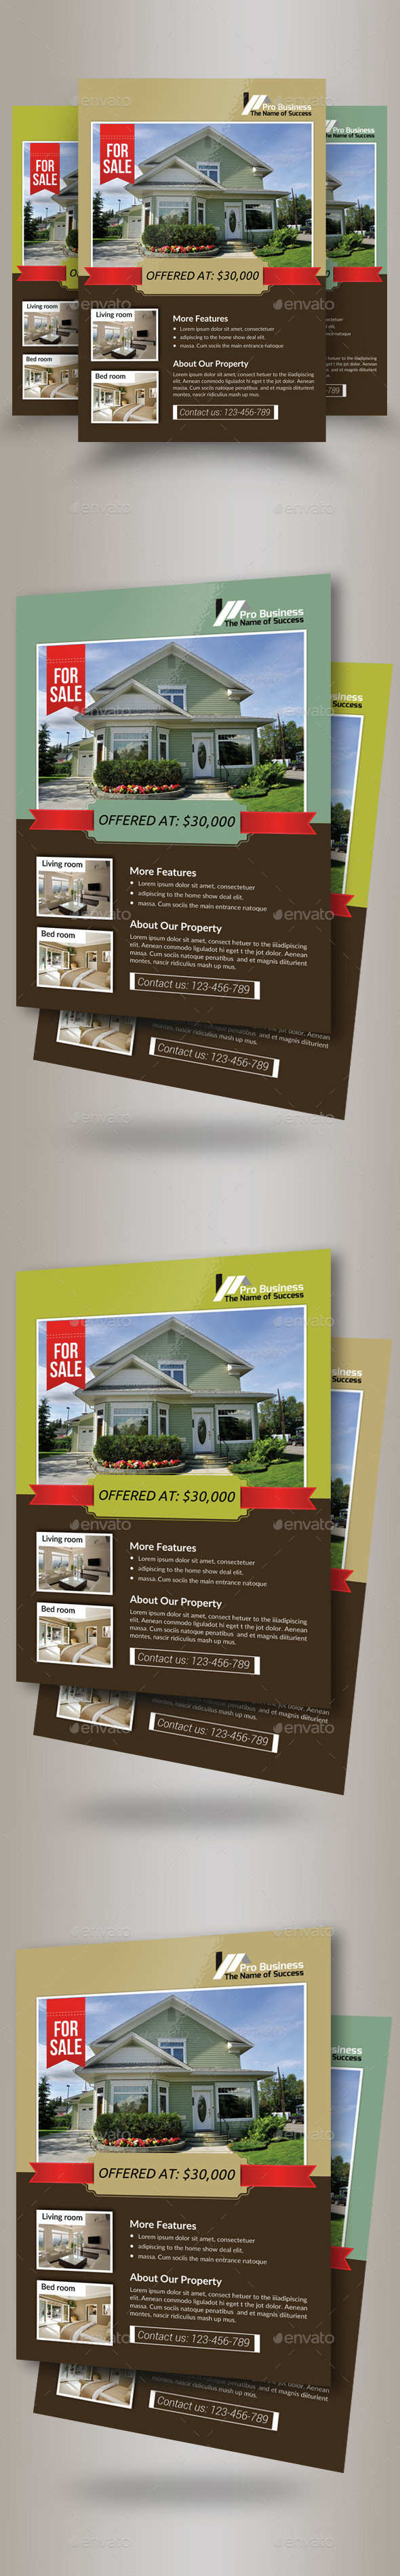 Estate Agency PSD Flyer Template - Corporate Flyers